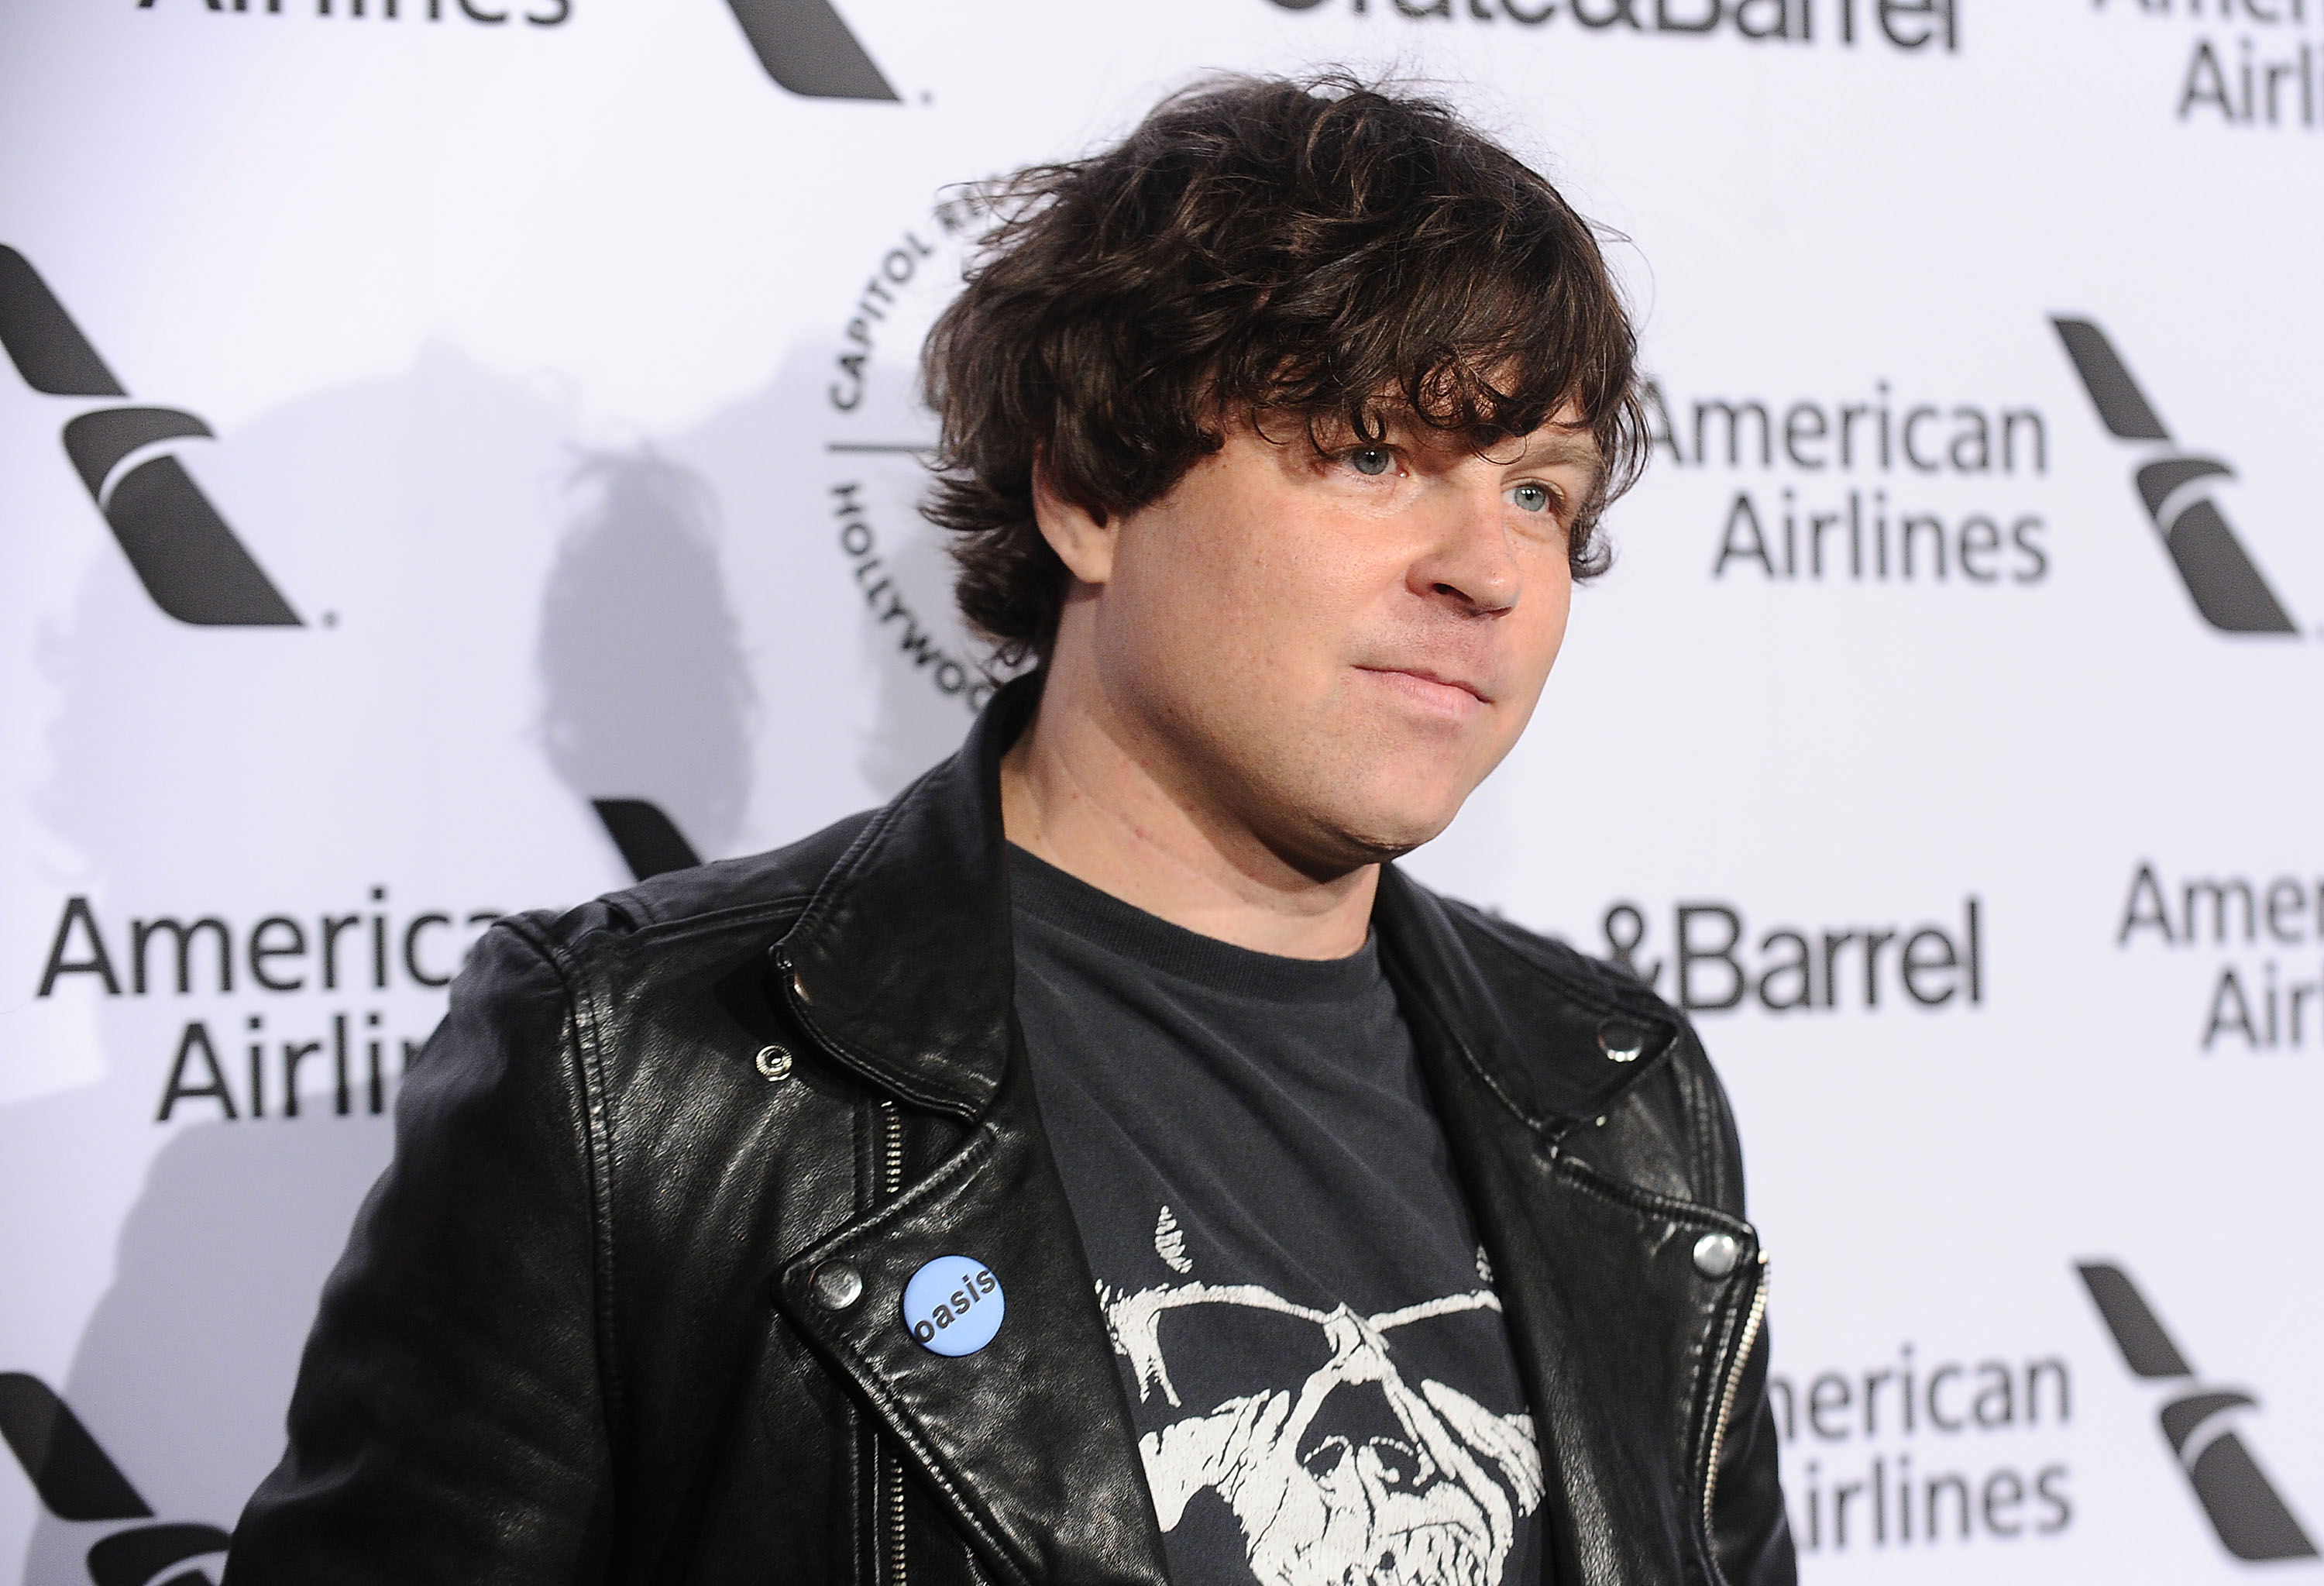 Ryan Adams issues apology one year after ex-wife Mandy Moore, other women accuse him of abuse - Fox News